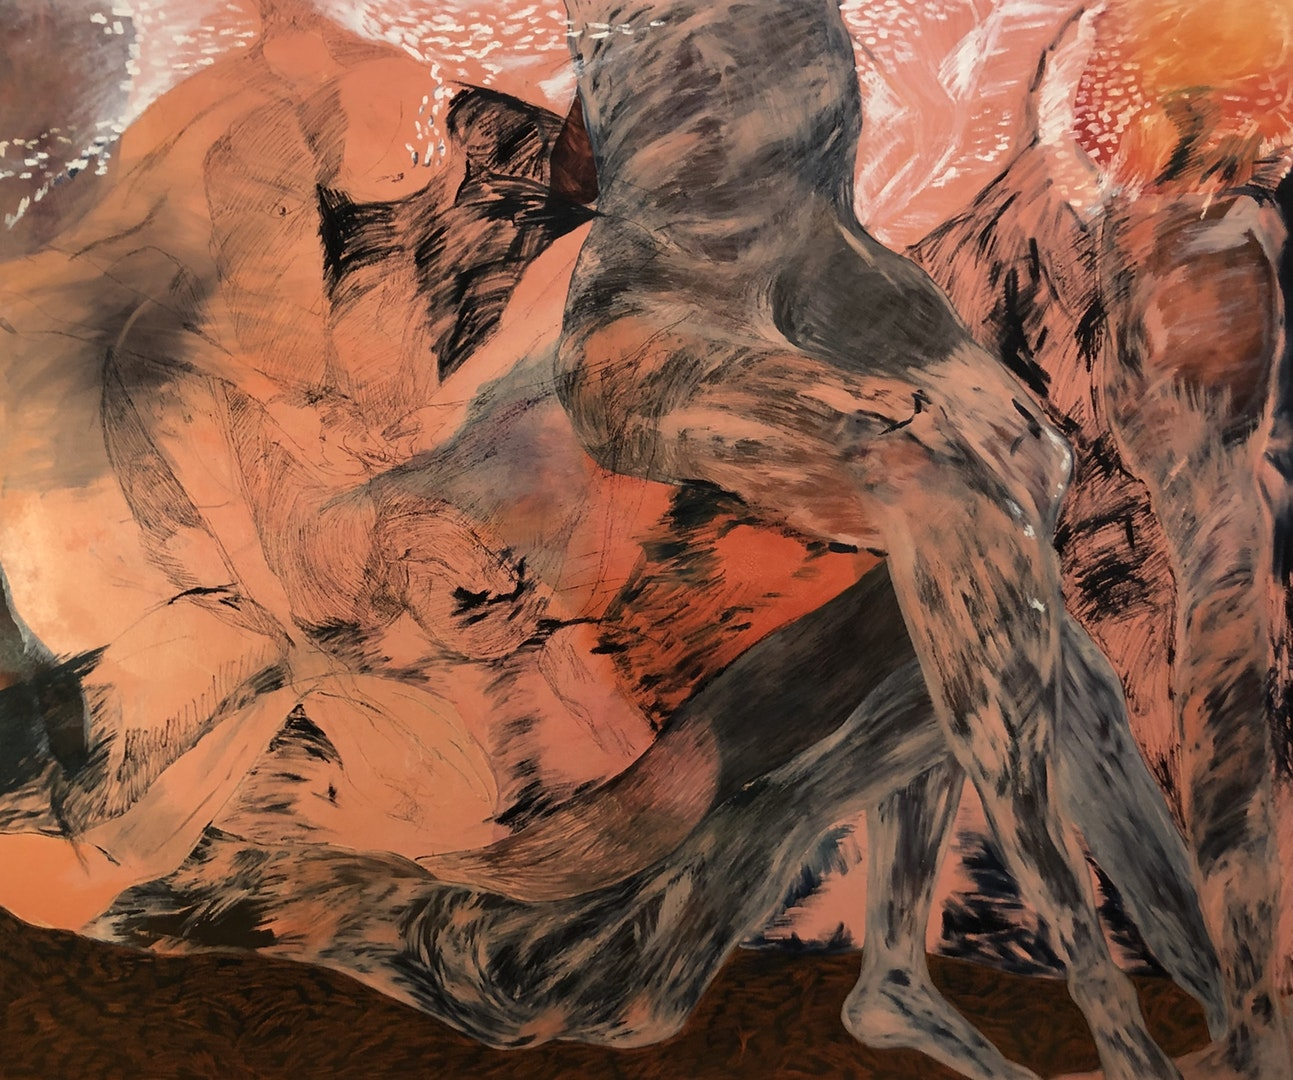 'Body II', Lucy Neish, Oil on canvas, 180 x 140 cm